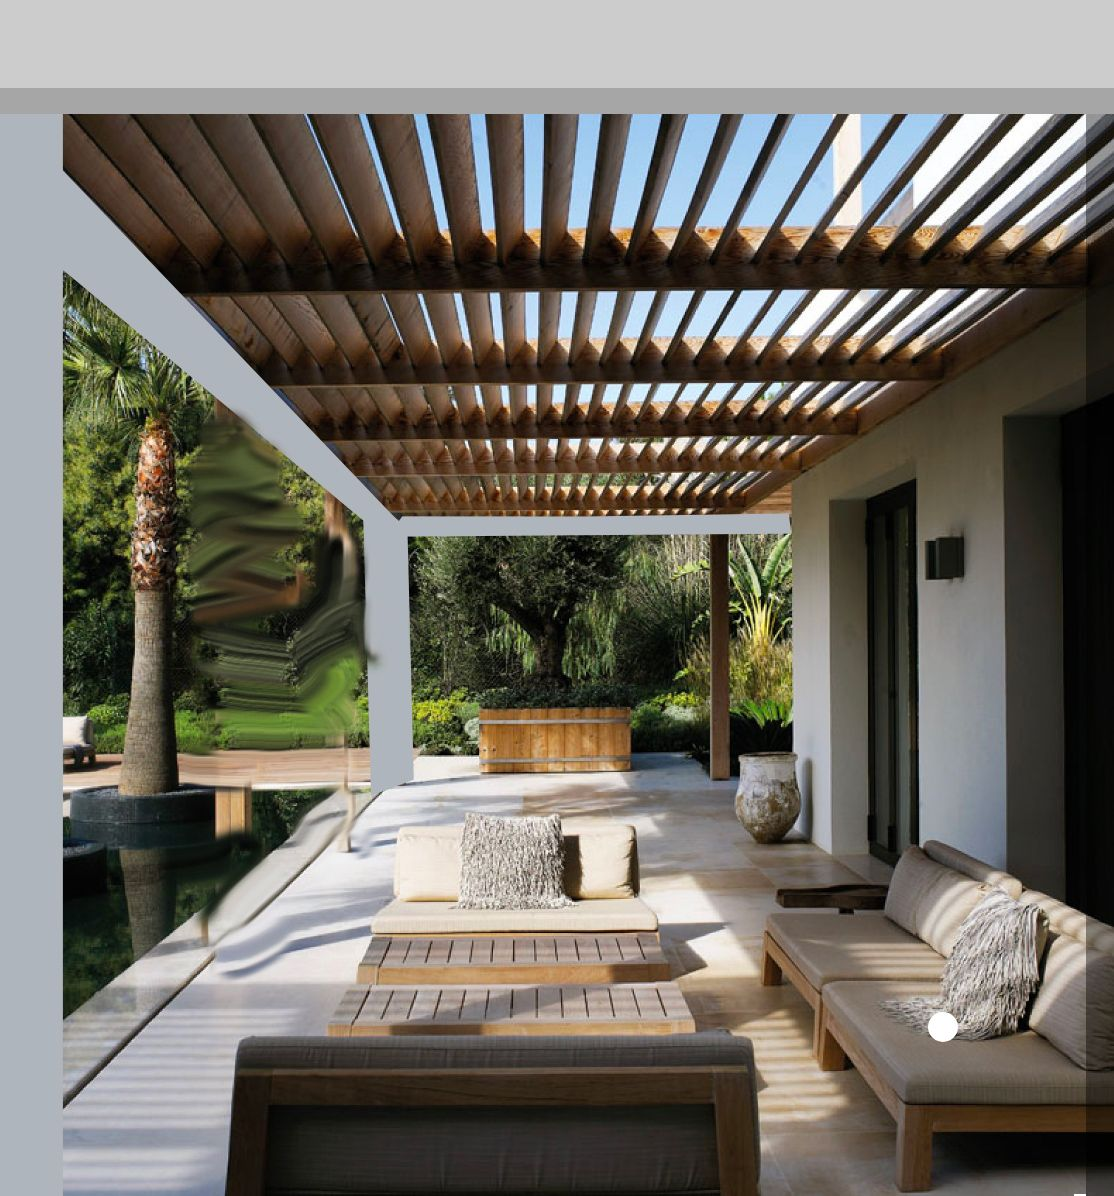 Pergola Ceiling Designs: White Conrete Frame With Wood